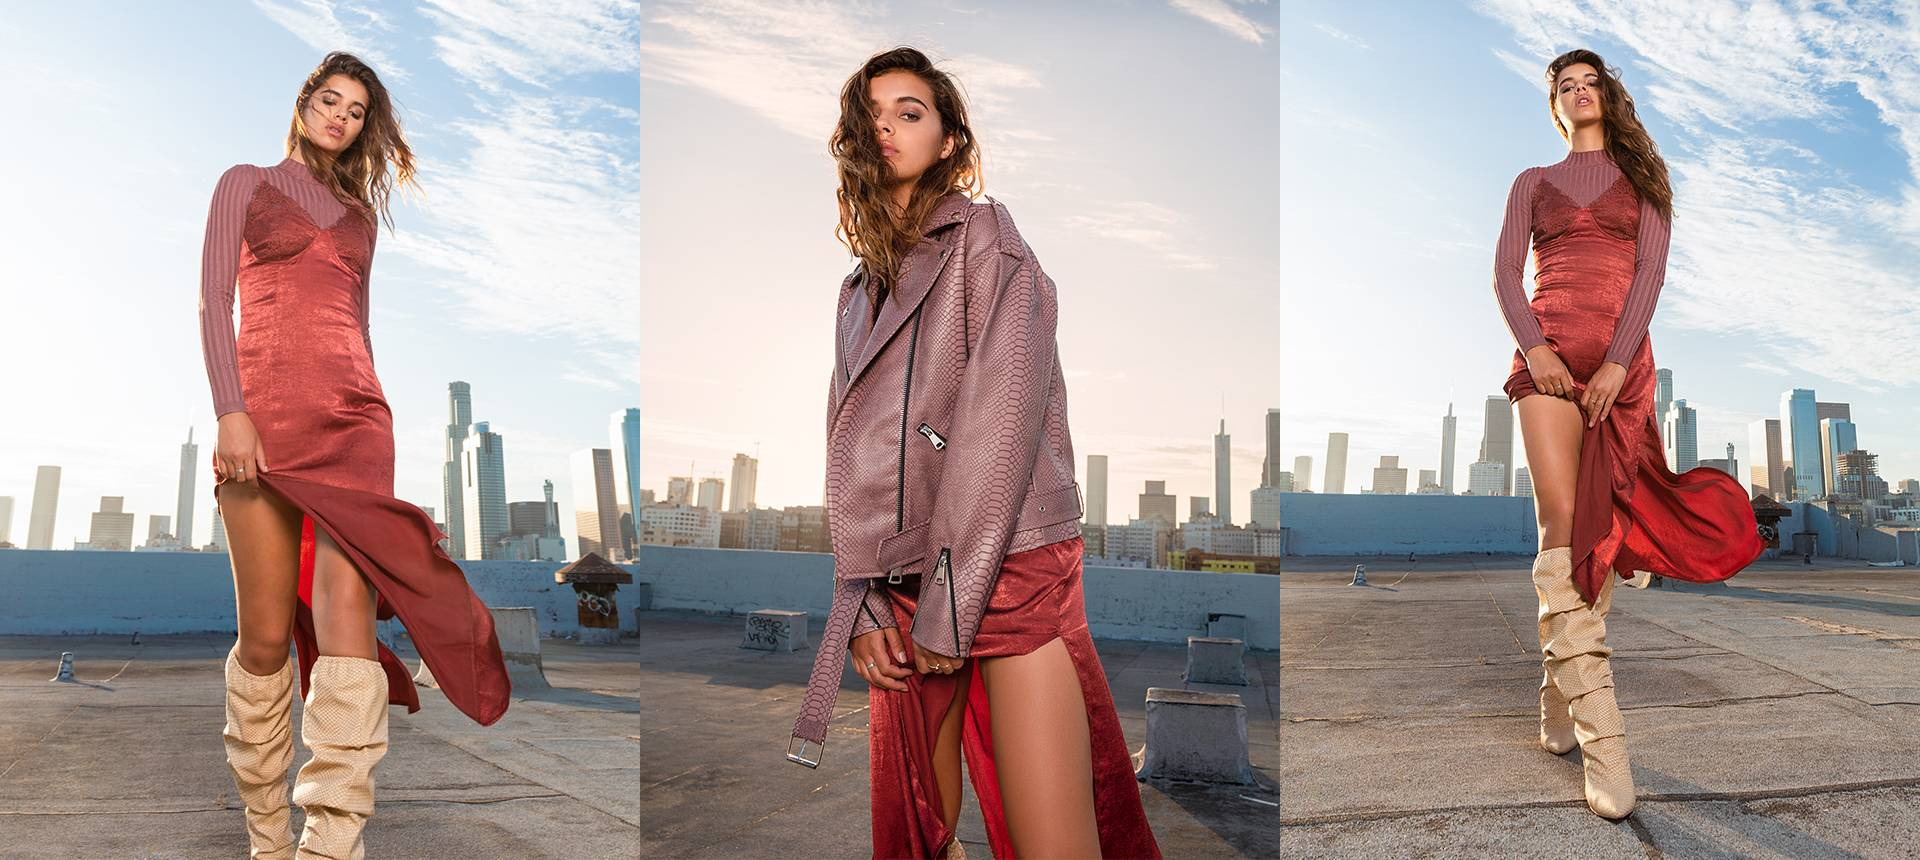 cfe38ce7ae Missguided EU: Women's Clothes | Online Shopping & Fashion